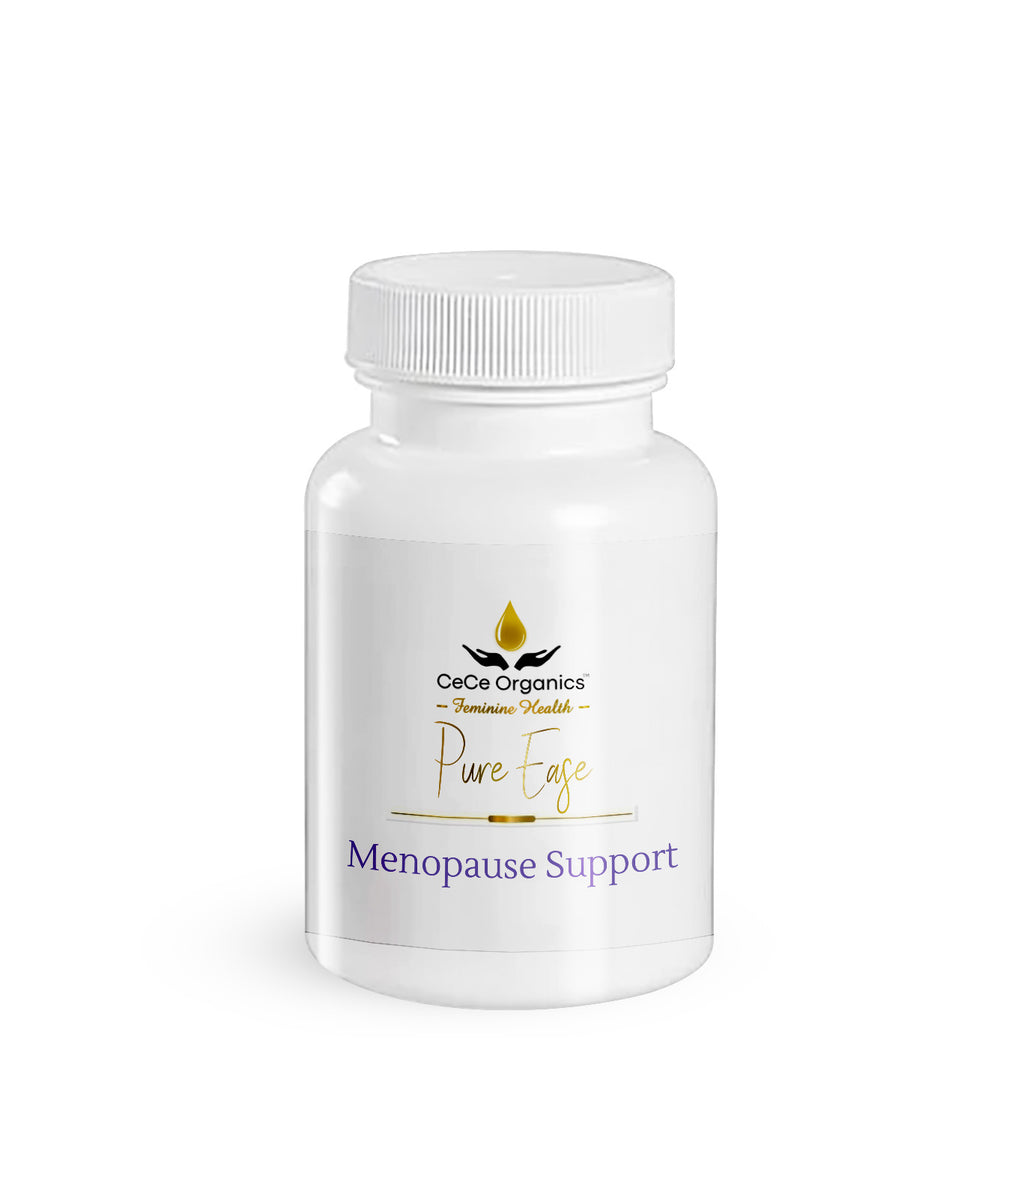 Pure Ease (Menopause Support)